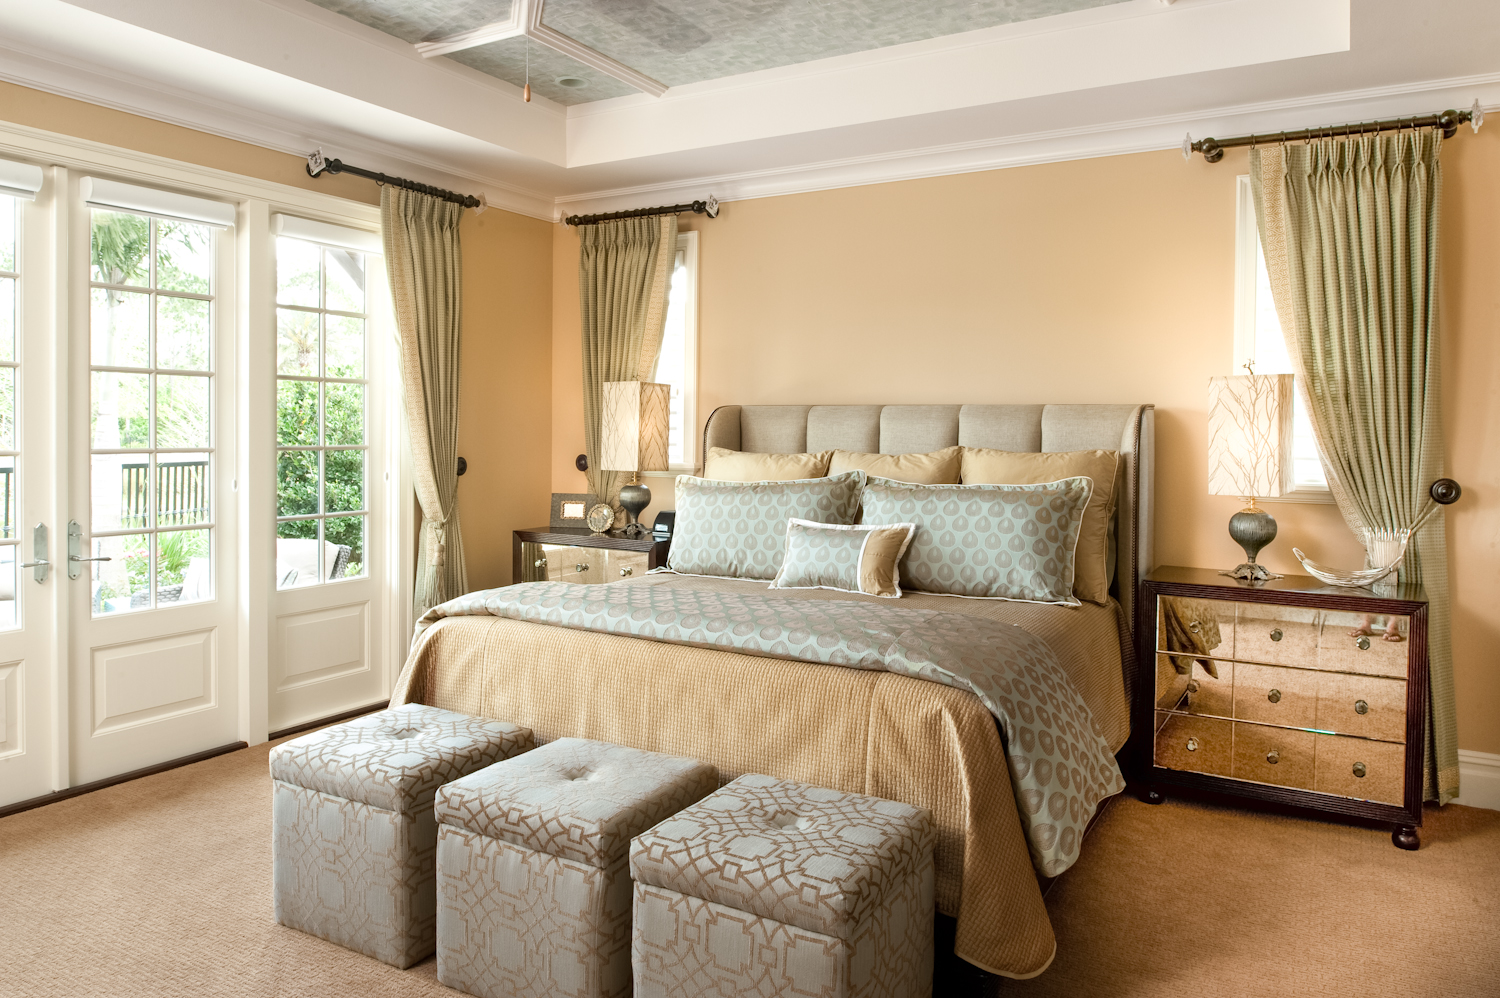 100 master bedroom ideas will make you feel rich Master bedroom color ideas 2015